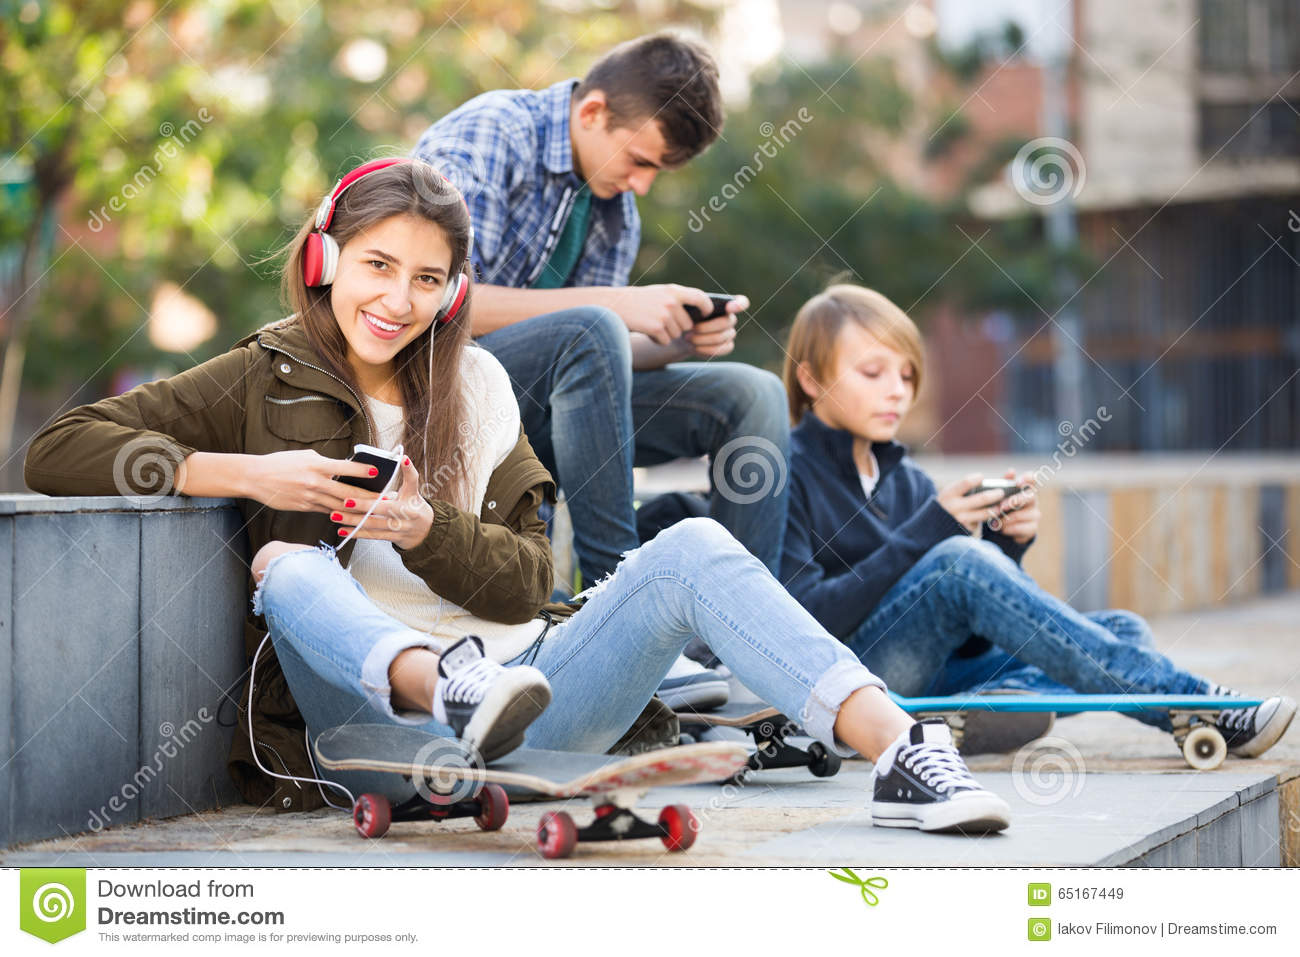 Three teenagers with smartphones